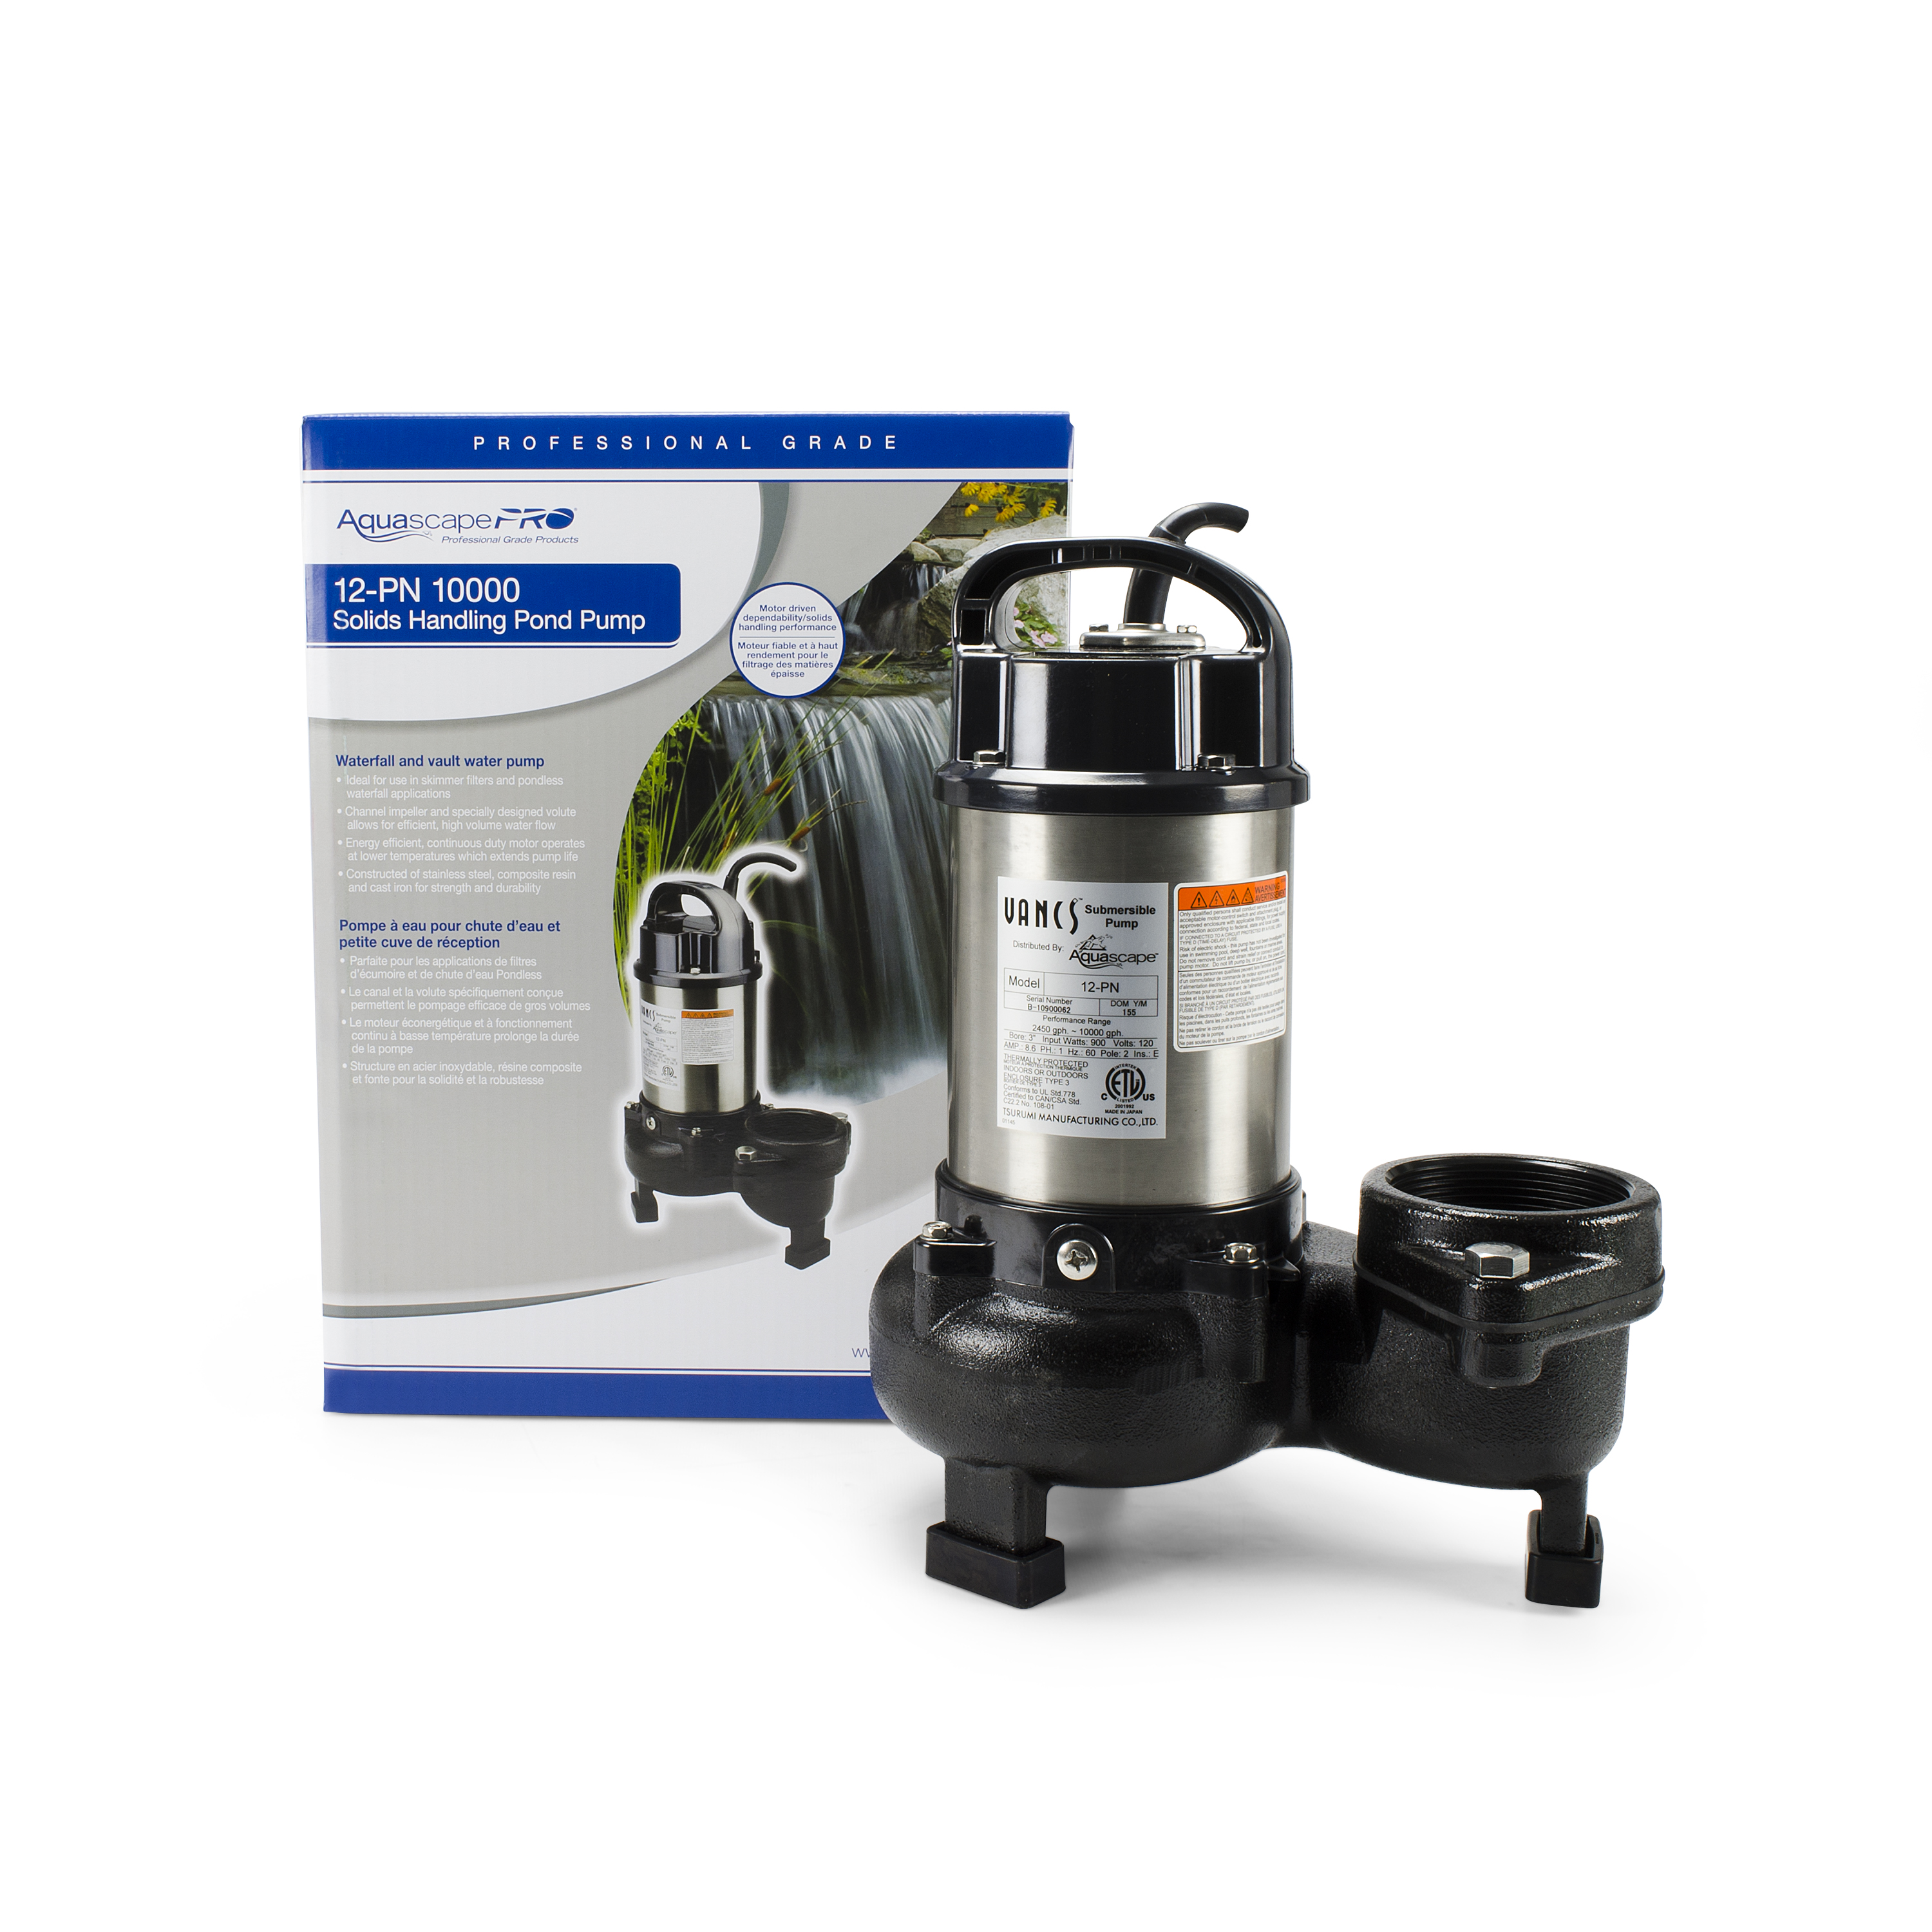 12-PN 10000 Solids-Handling Pond Pump